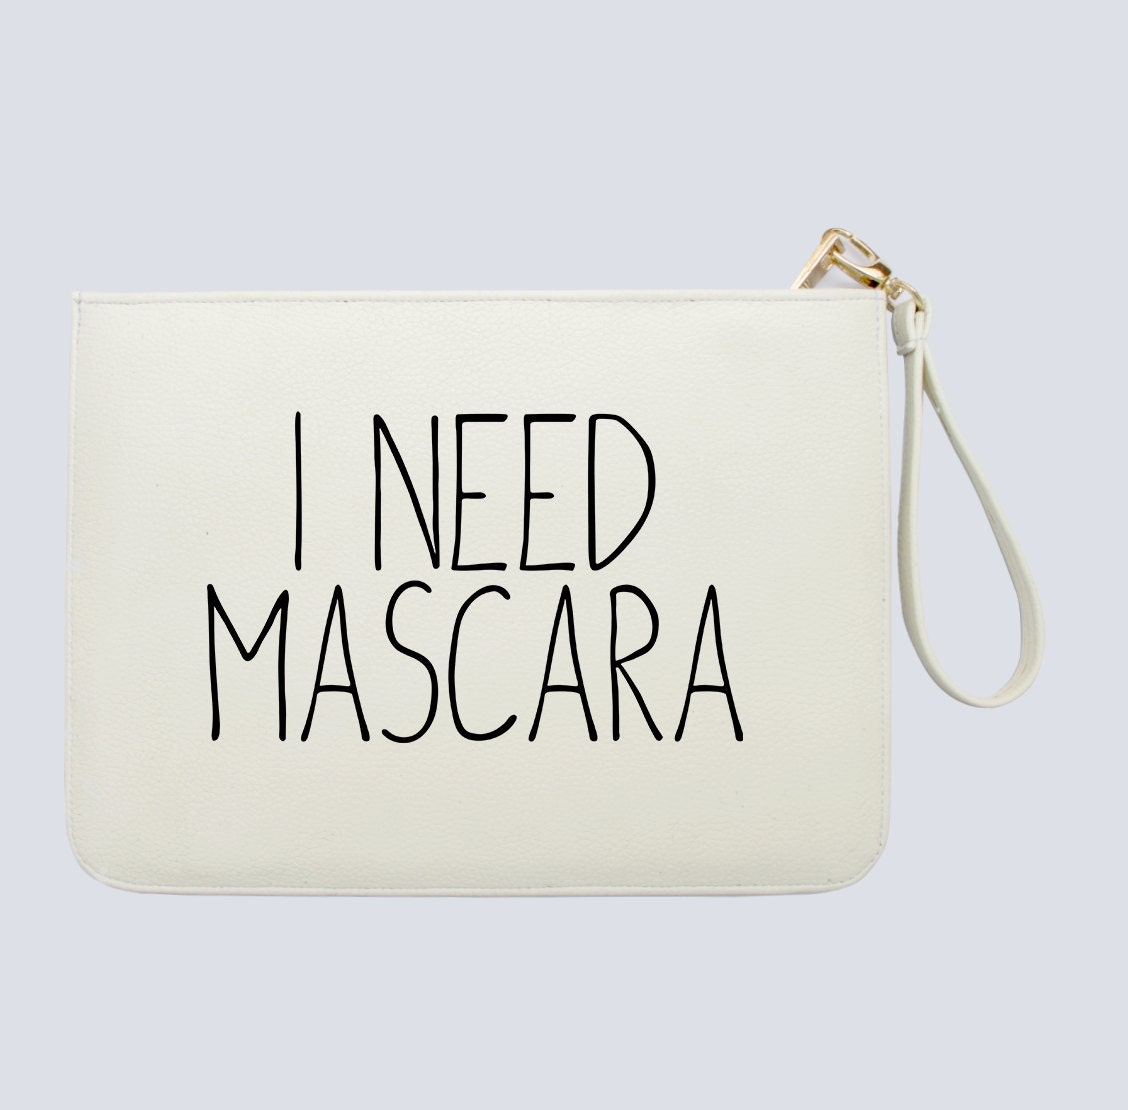 Mascara Quotes Mascara Quotes Magnificent Best 25 Mascara Quotes Ideas On